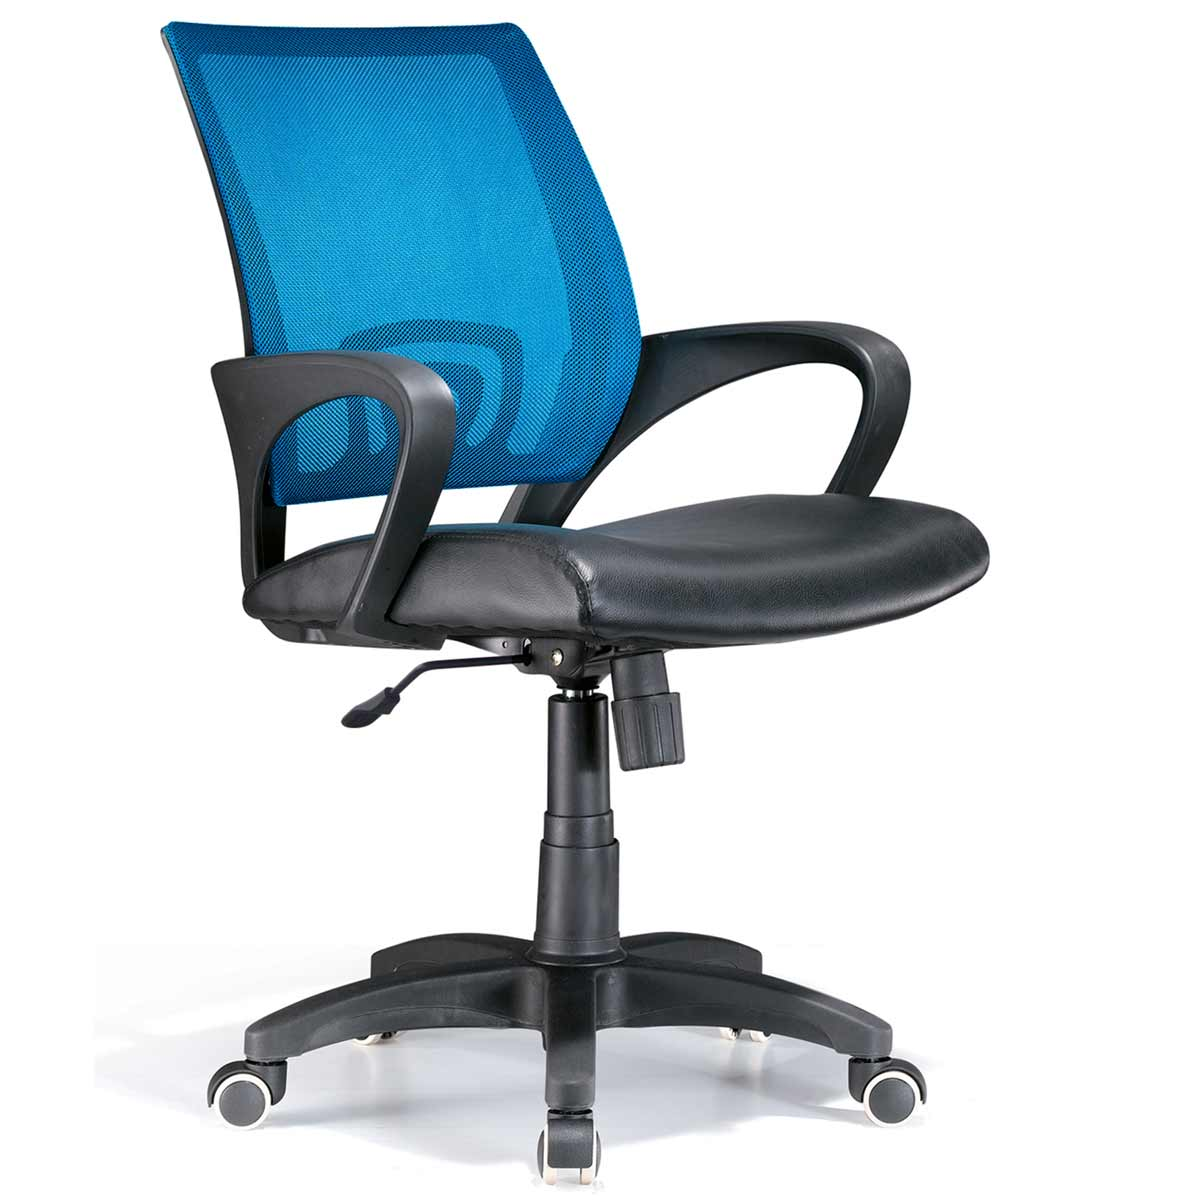 Home Office Gaming Chair in Blue Color